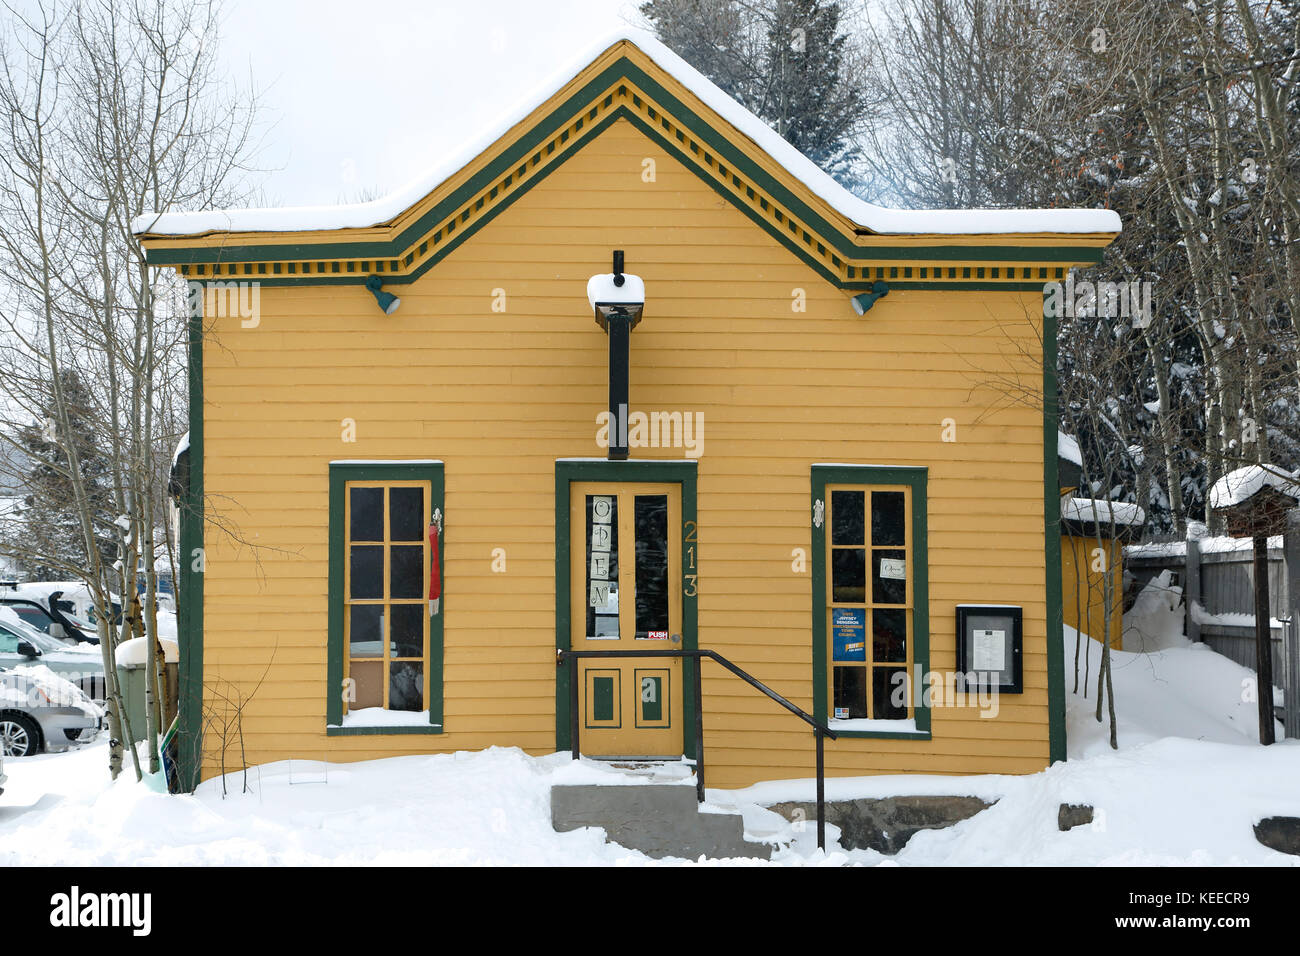 Amazing Grace Natural Eatery (coffee house and bakery), Breckenridge, Colorado USA - Stock Image